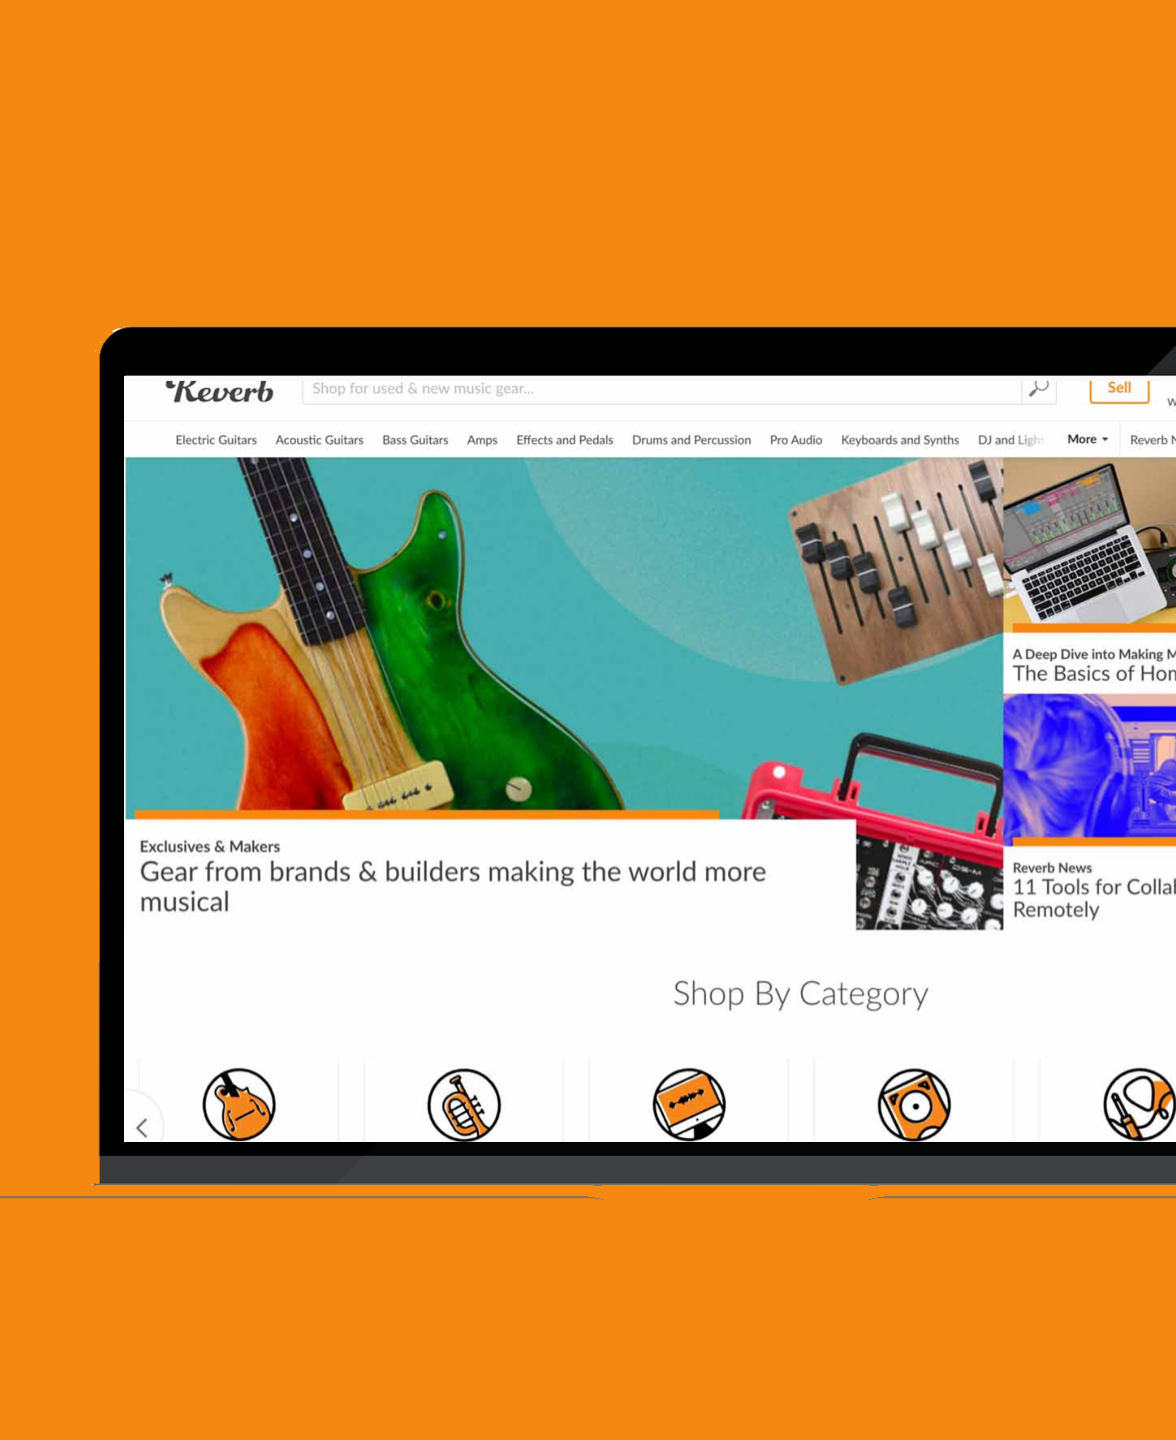 marketplace for musicians